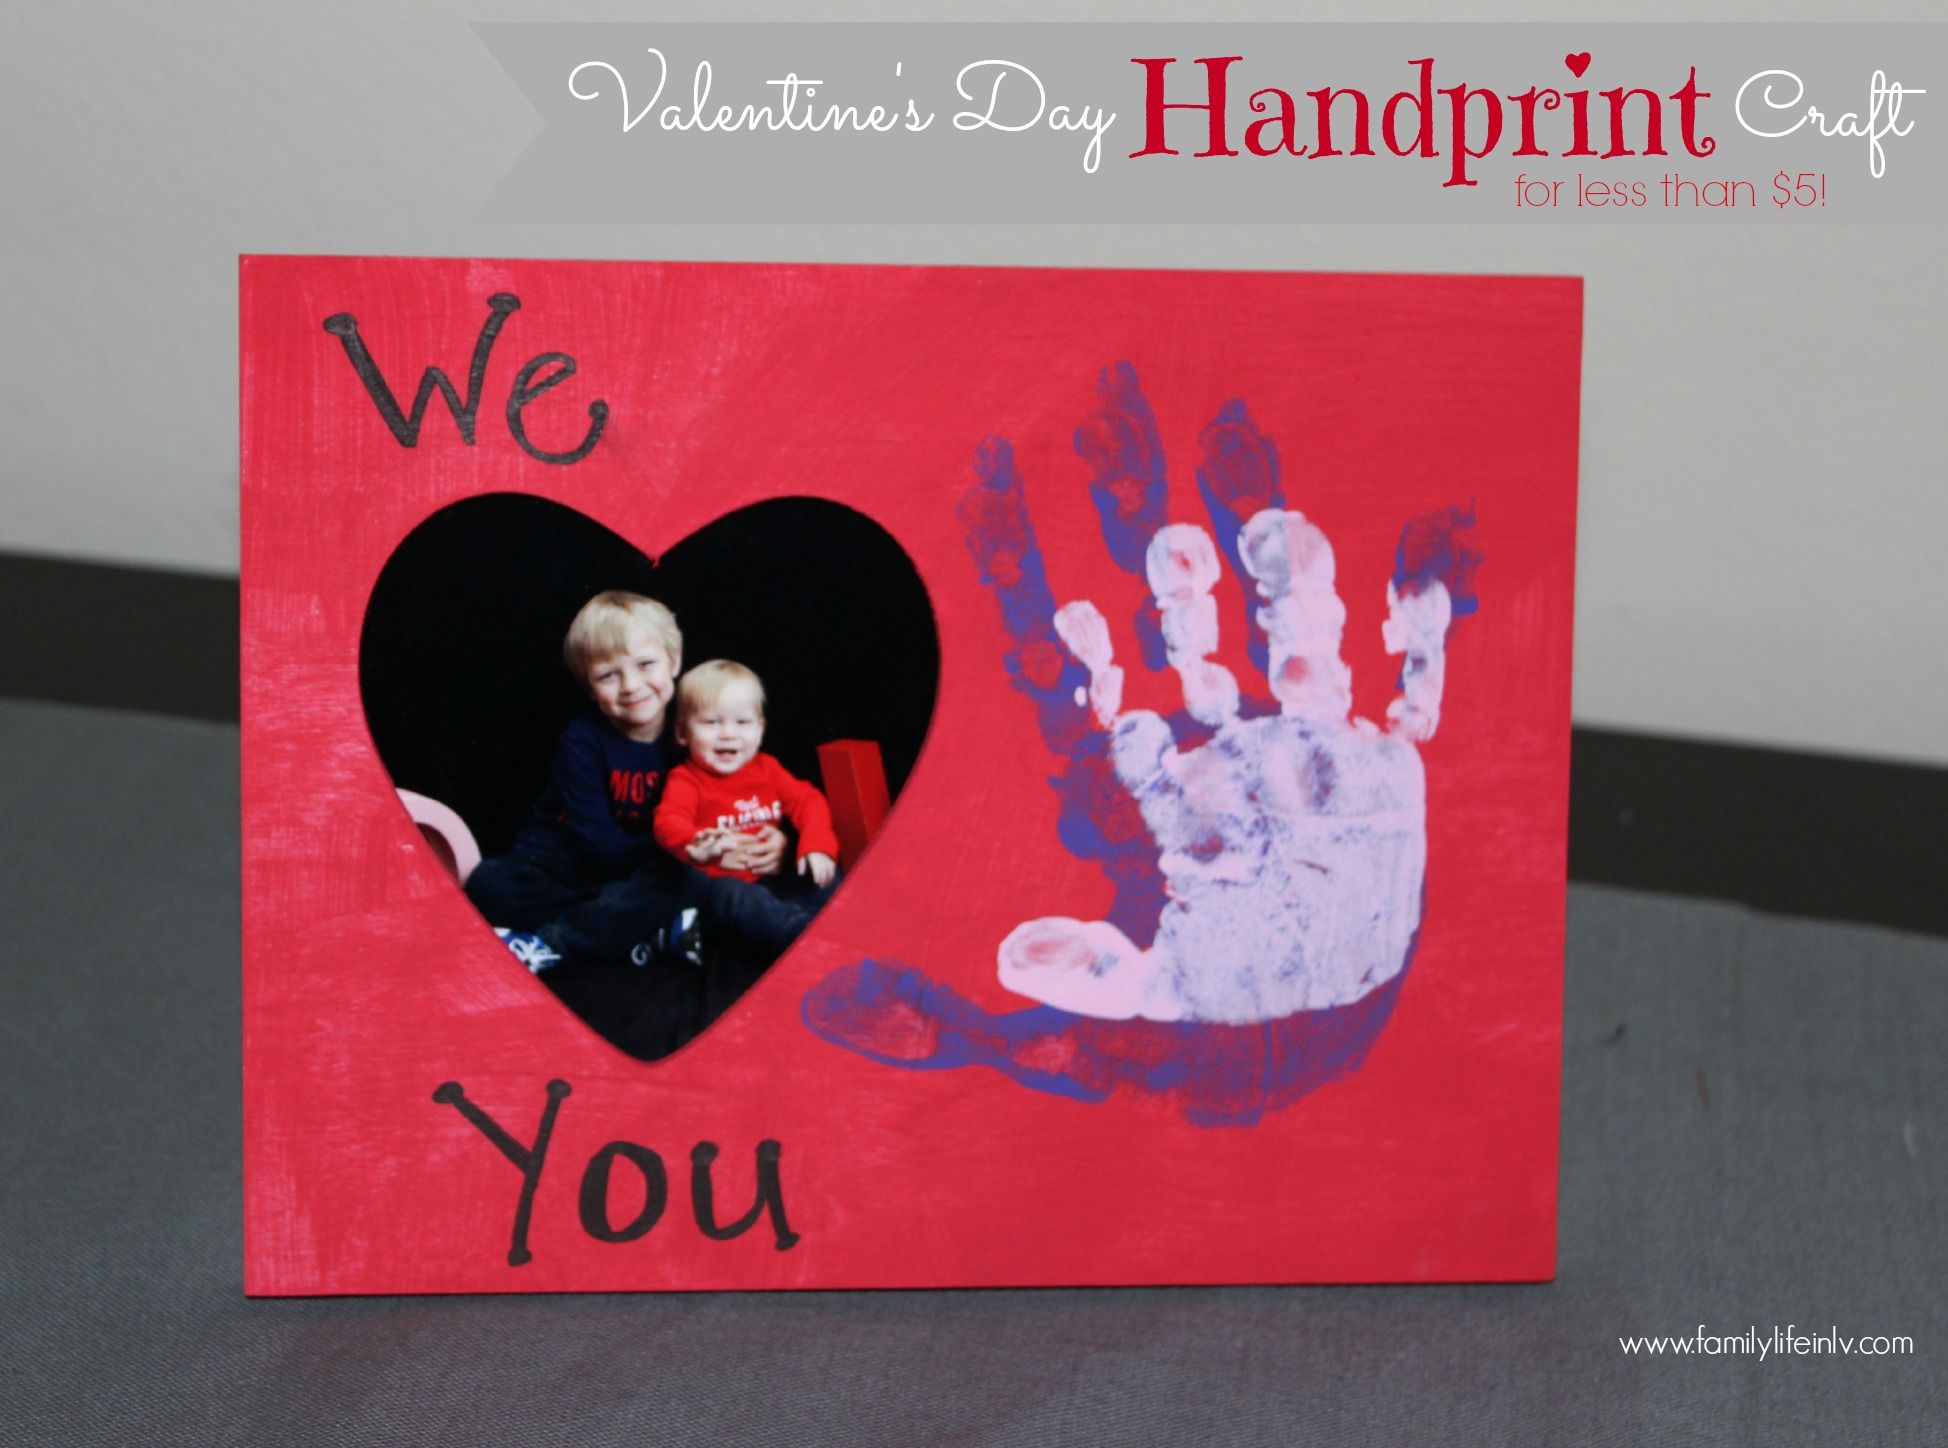 Valentines day handprint frame craft our knight lifecomment valentines craft for kids valentnes day craft handprint craft valentines day handprint craft valentines day frame jeuxipadfo Gallery